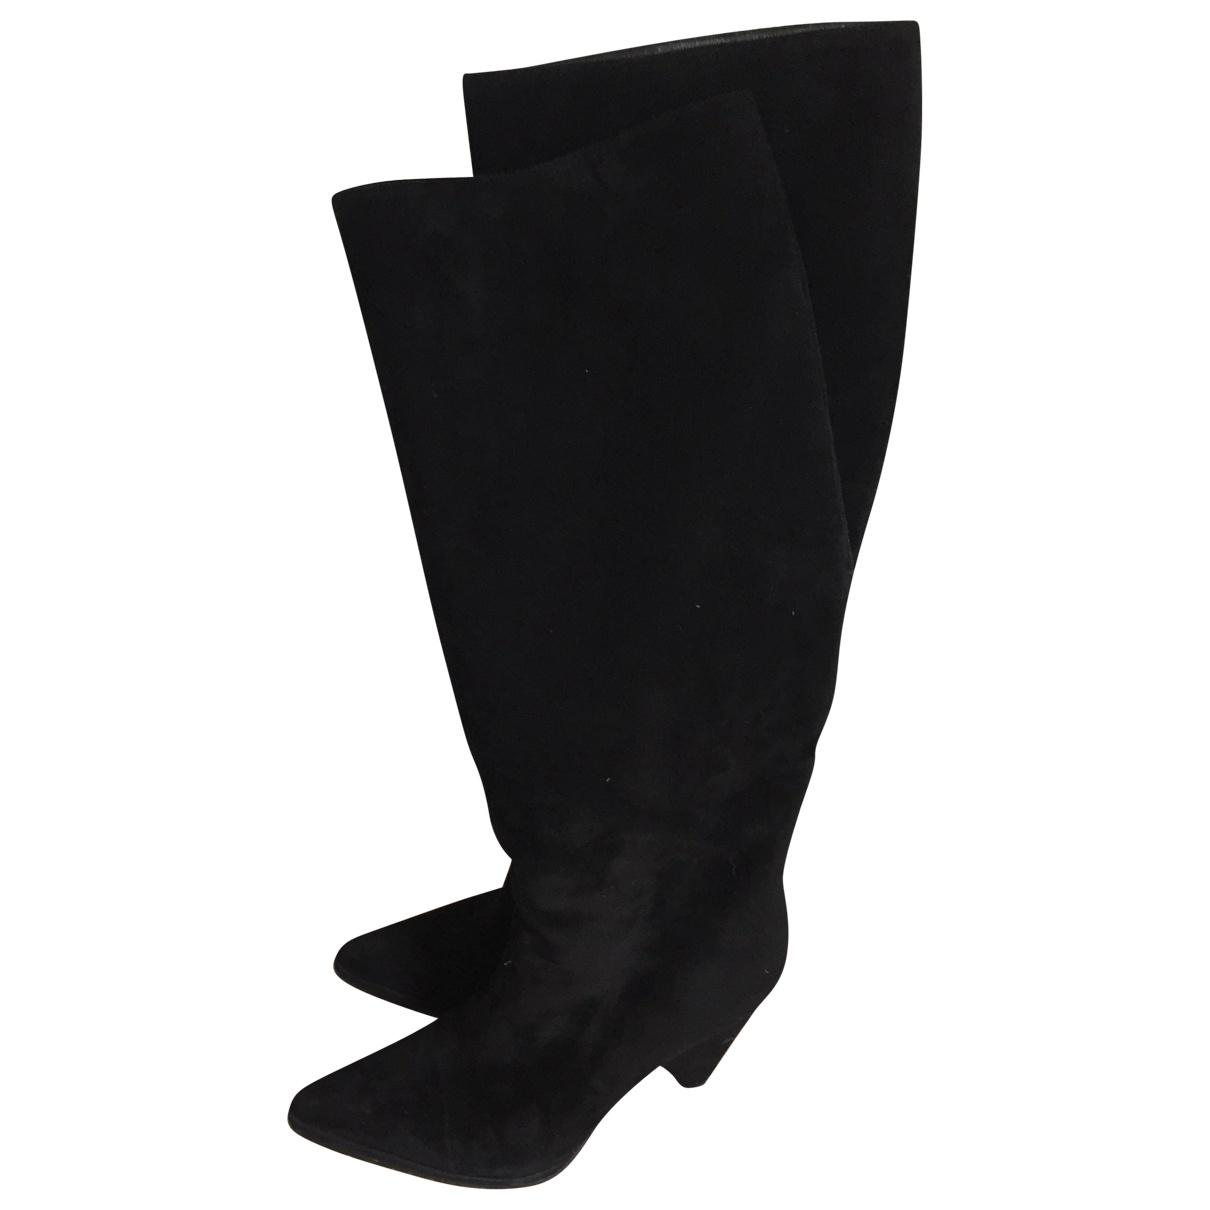 Sergio Rossi \N Black Suede Boots for Women 38.5 IT